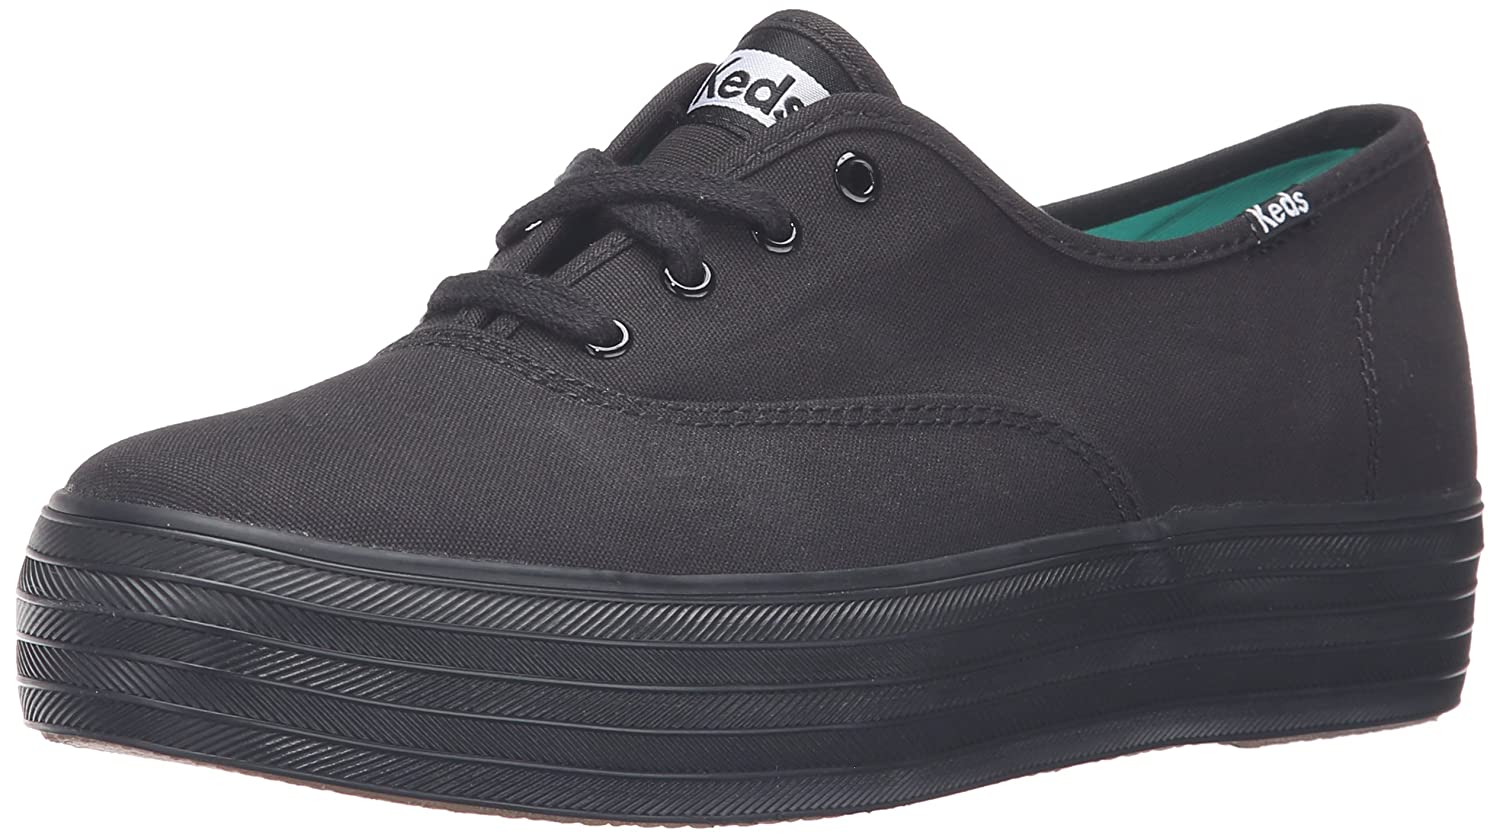 Keds Women's Triple Core Fashion Sneaker B00DNNP1VO 6.5 B(M) US|Black/Black